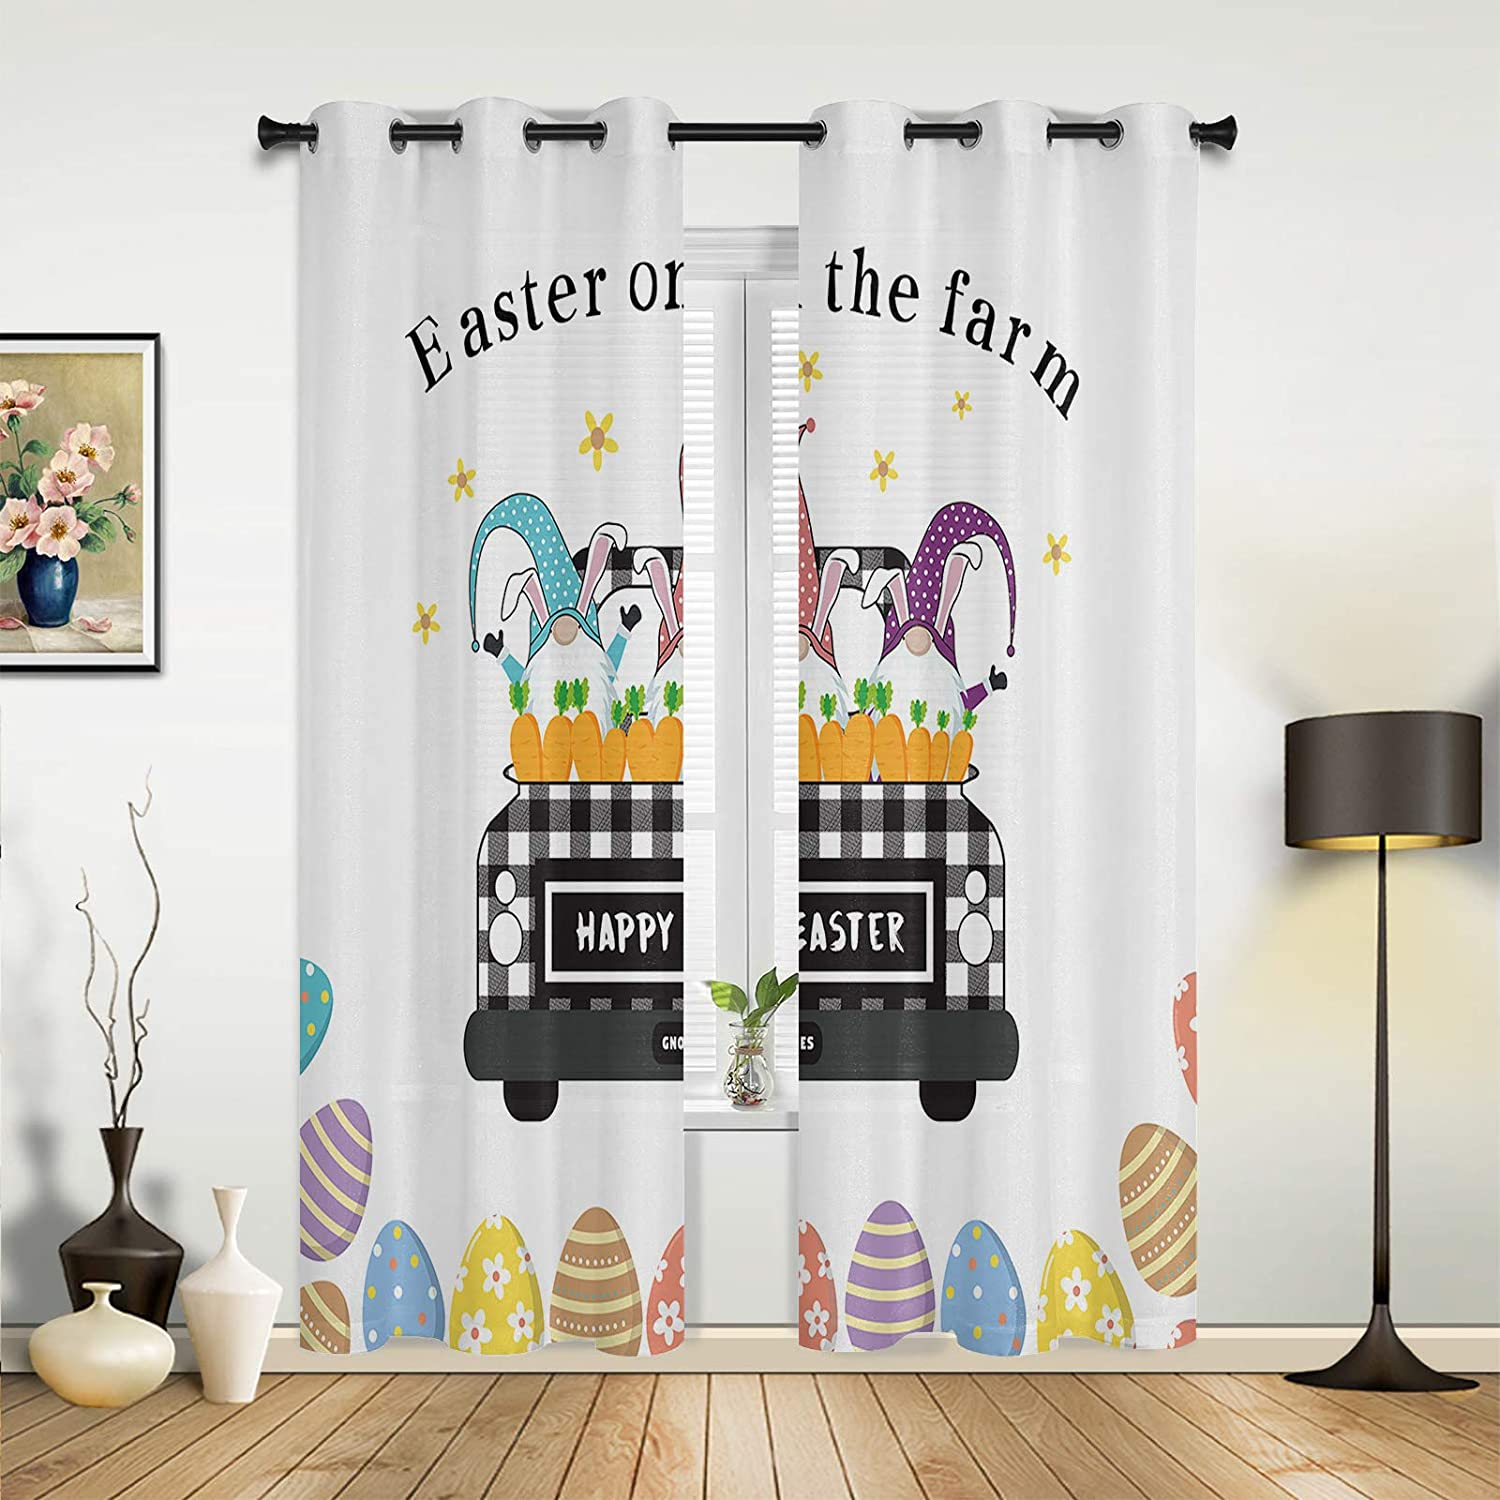 Window Sheer security Curtains for Bedroom Living shipfree Easter Happy Farm Cute